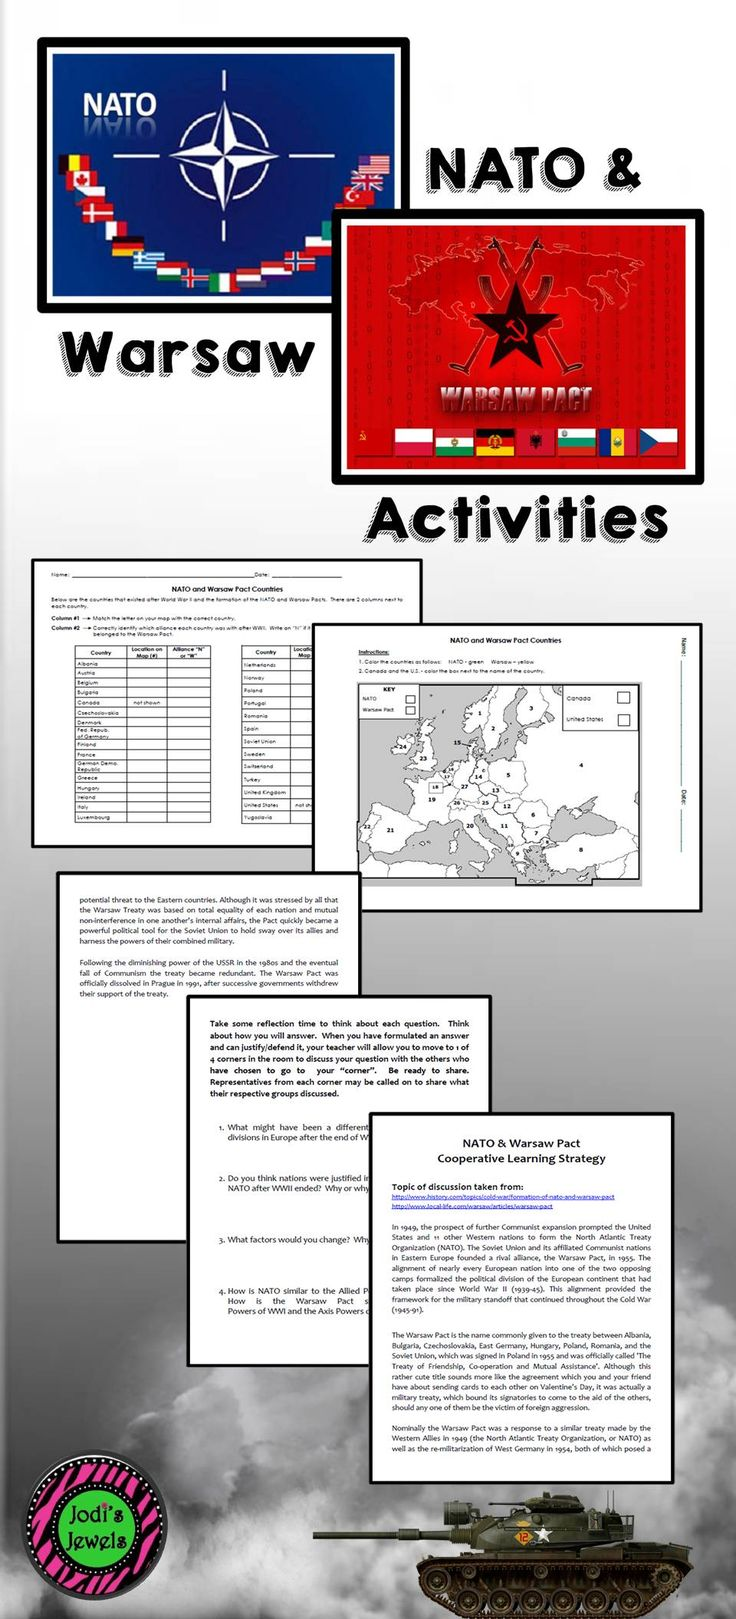 Activities include a 4 Corner Cooperative Learning Strategy that incorporates Bloom's Taxonomy questions about the NATO & Warsaw Pact political divisions at the end of WWII and a political map and data chart. Students will use the answers from the chart to color the political map of the NATO & Warsaw Pact countries.